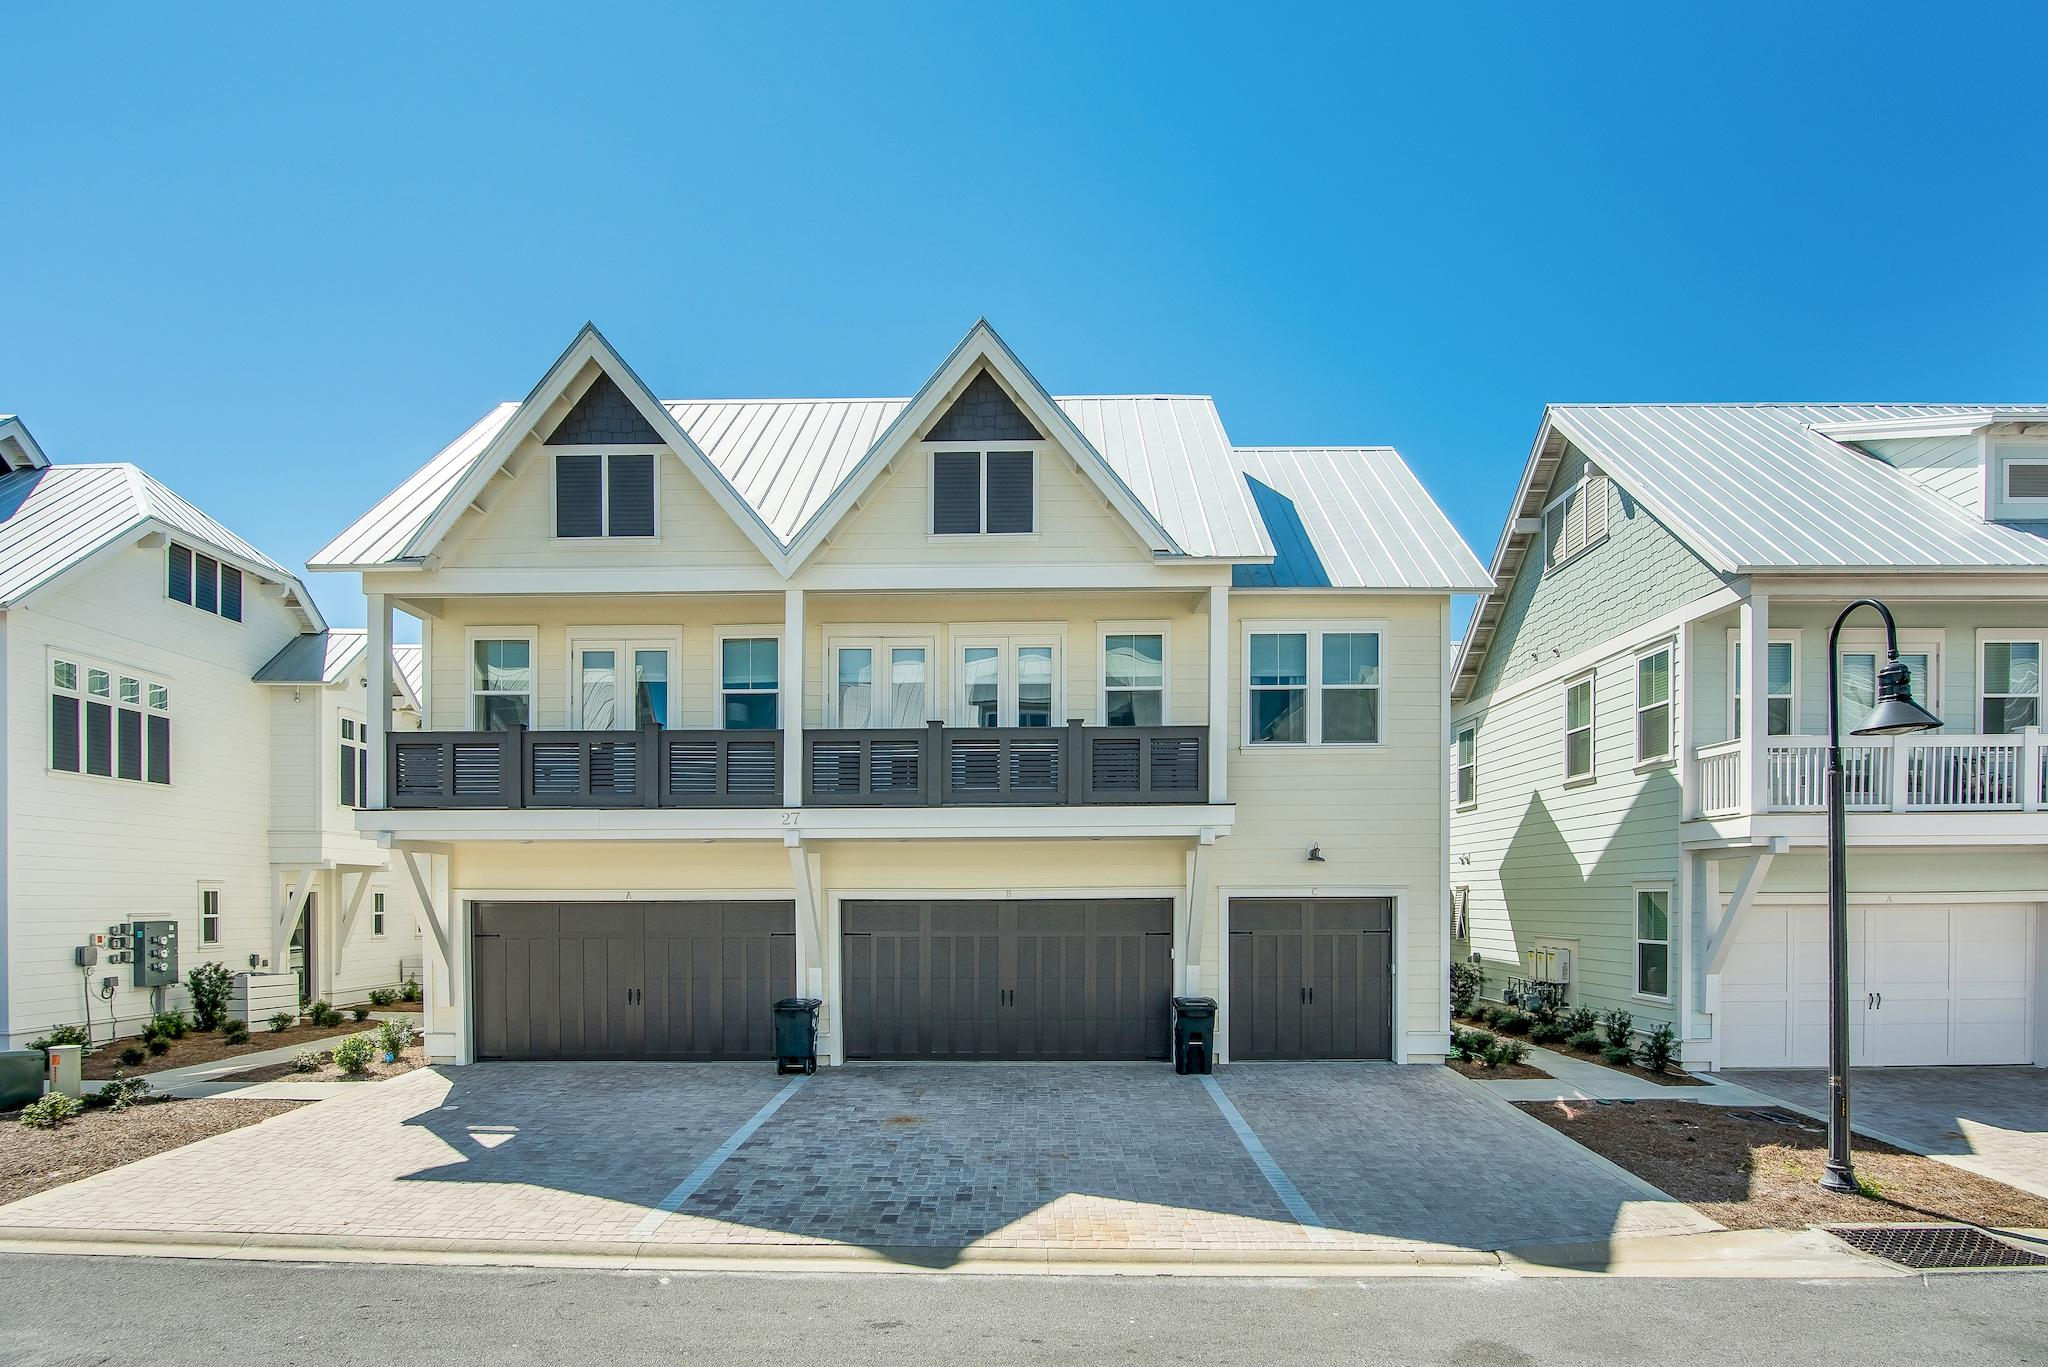 Photo of home for sale at 27 Dune Comet, Inlet Beach FL